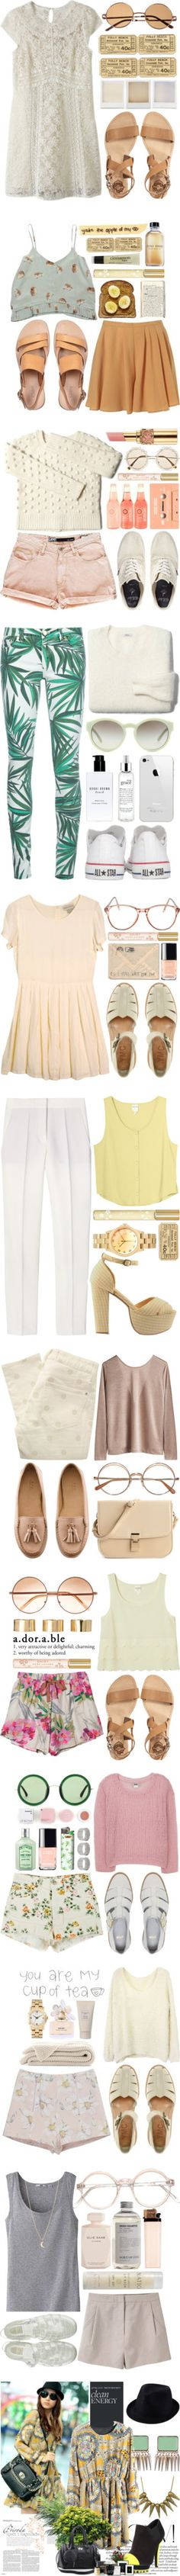 """lol its a collection"" by miast ❤ liked on Polyvore"